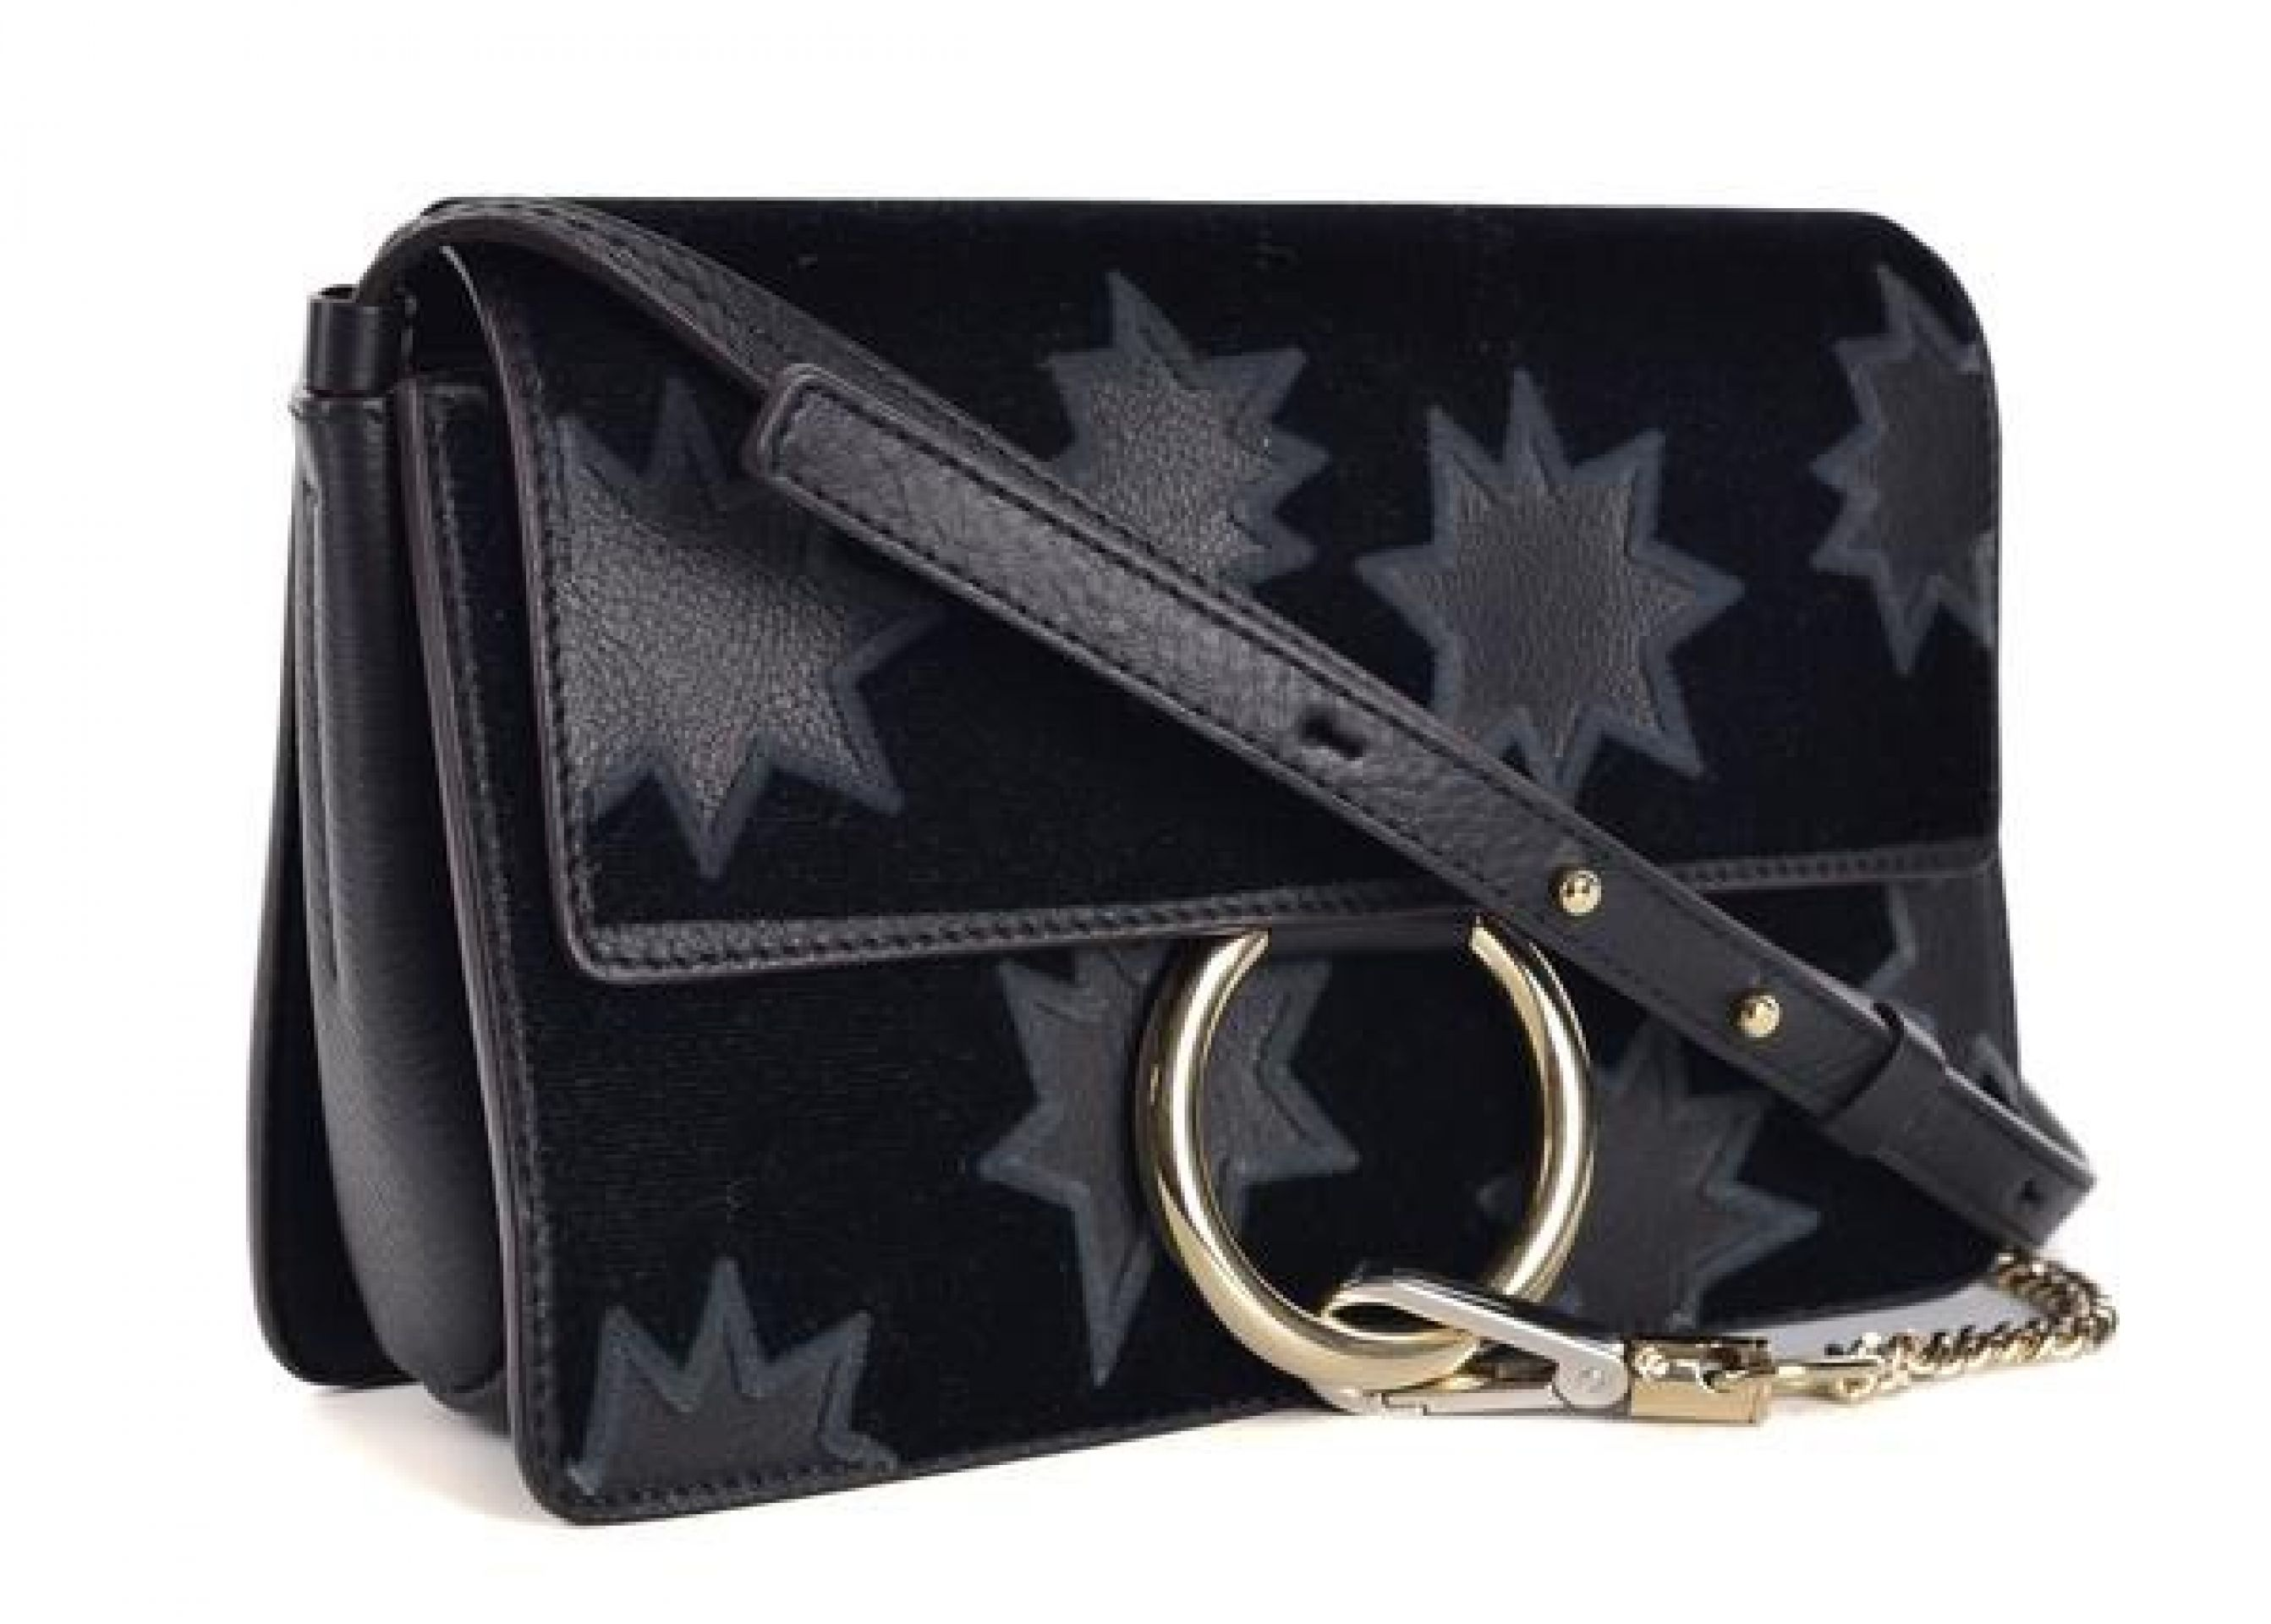 CHLOE BLACK LEATHER FAYE STARS EMBROIDERY CROSSBODY SHOULDER BAG